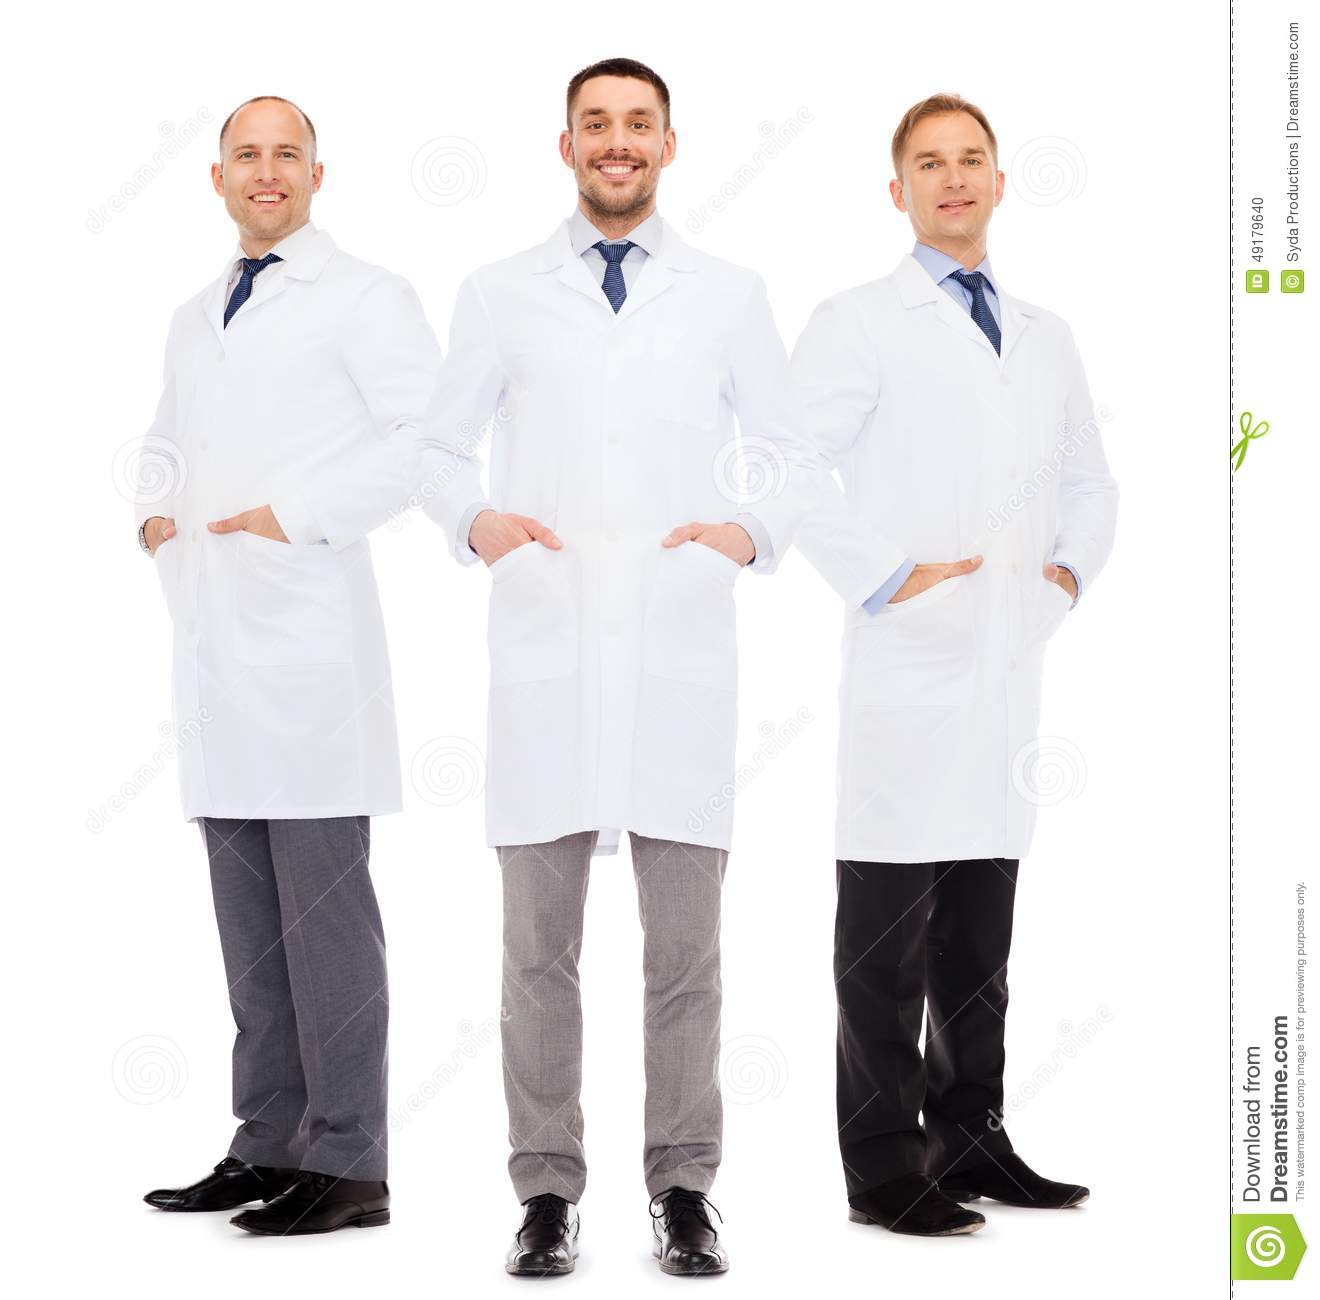 Smiling Male Doctors In White Coats Stock Photo - Image: 49179640